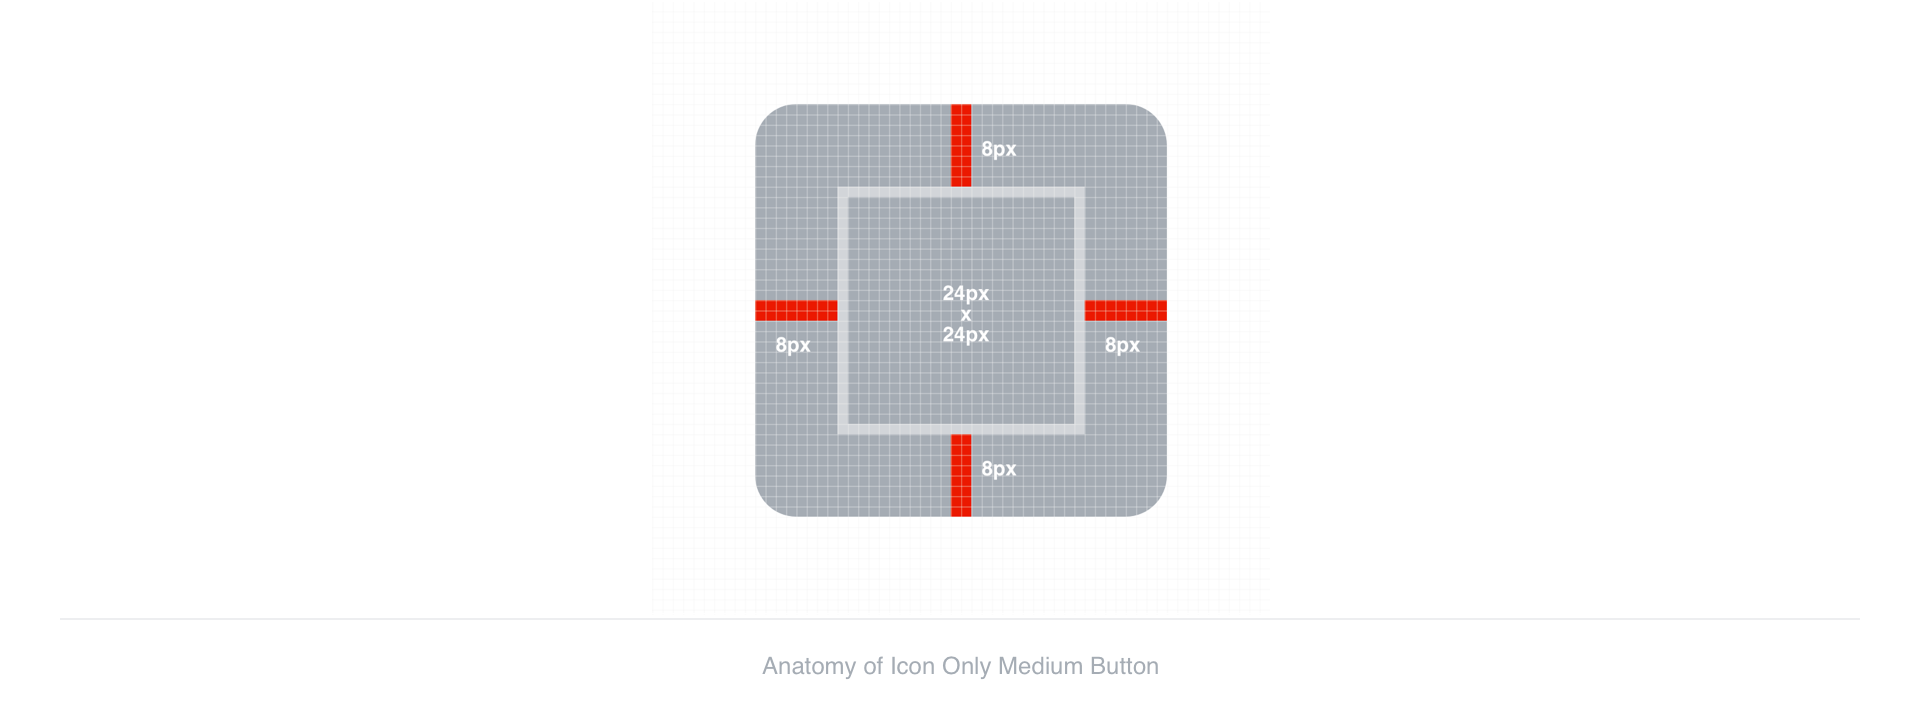 Anatomy of Large Icon Button